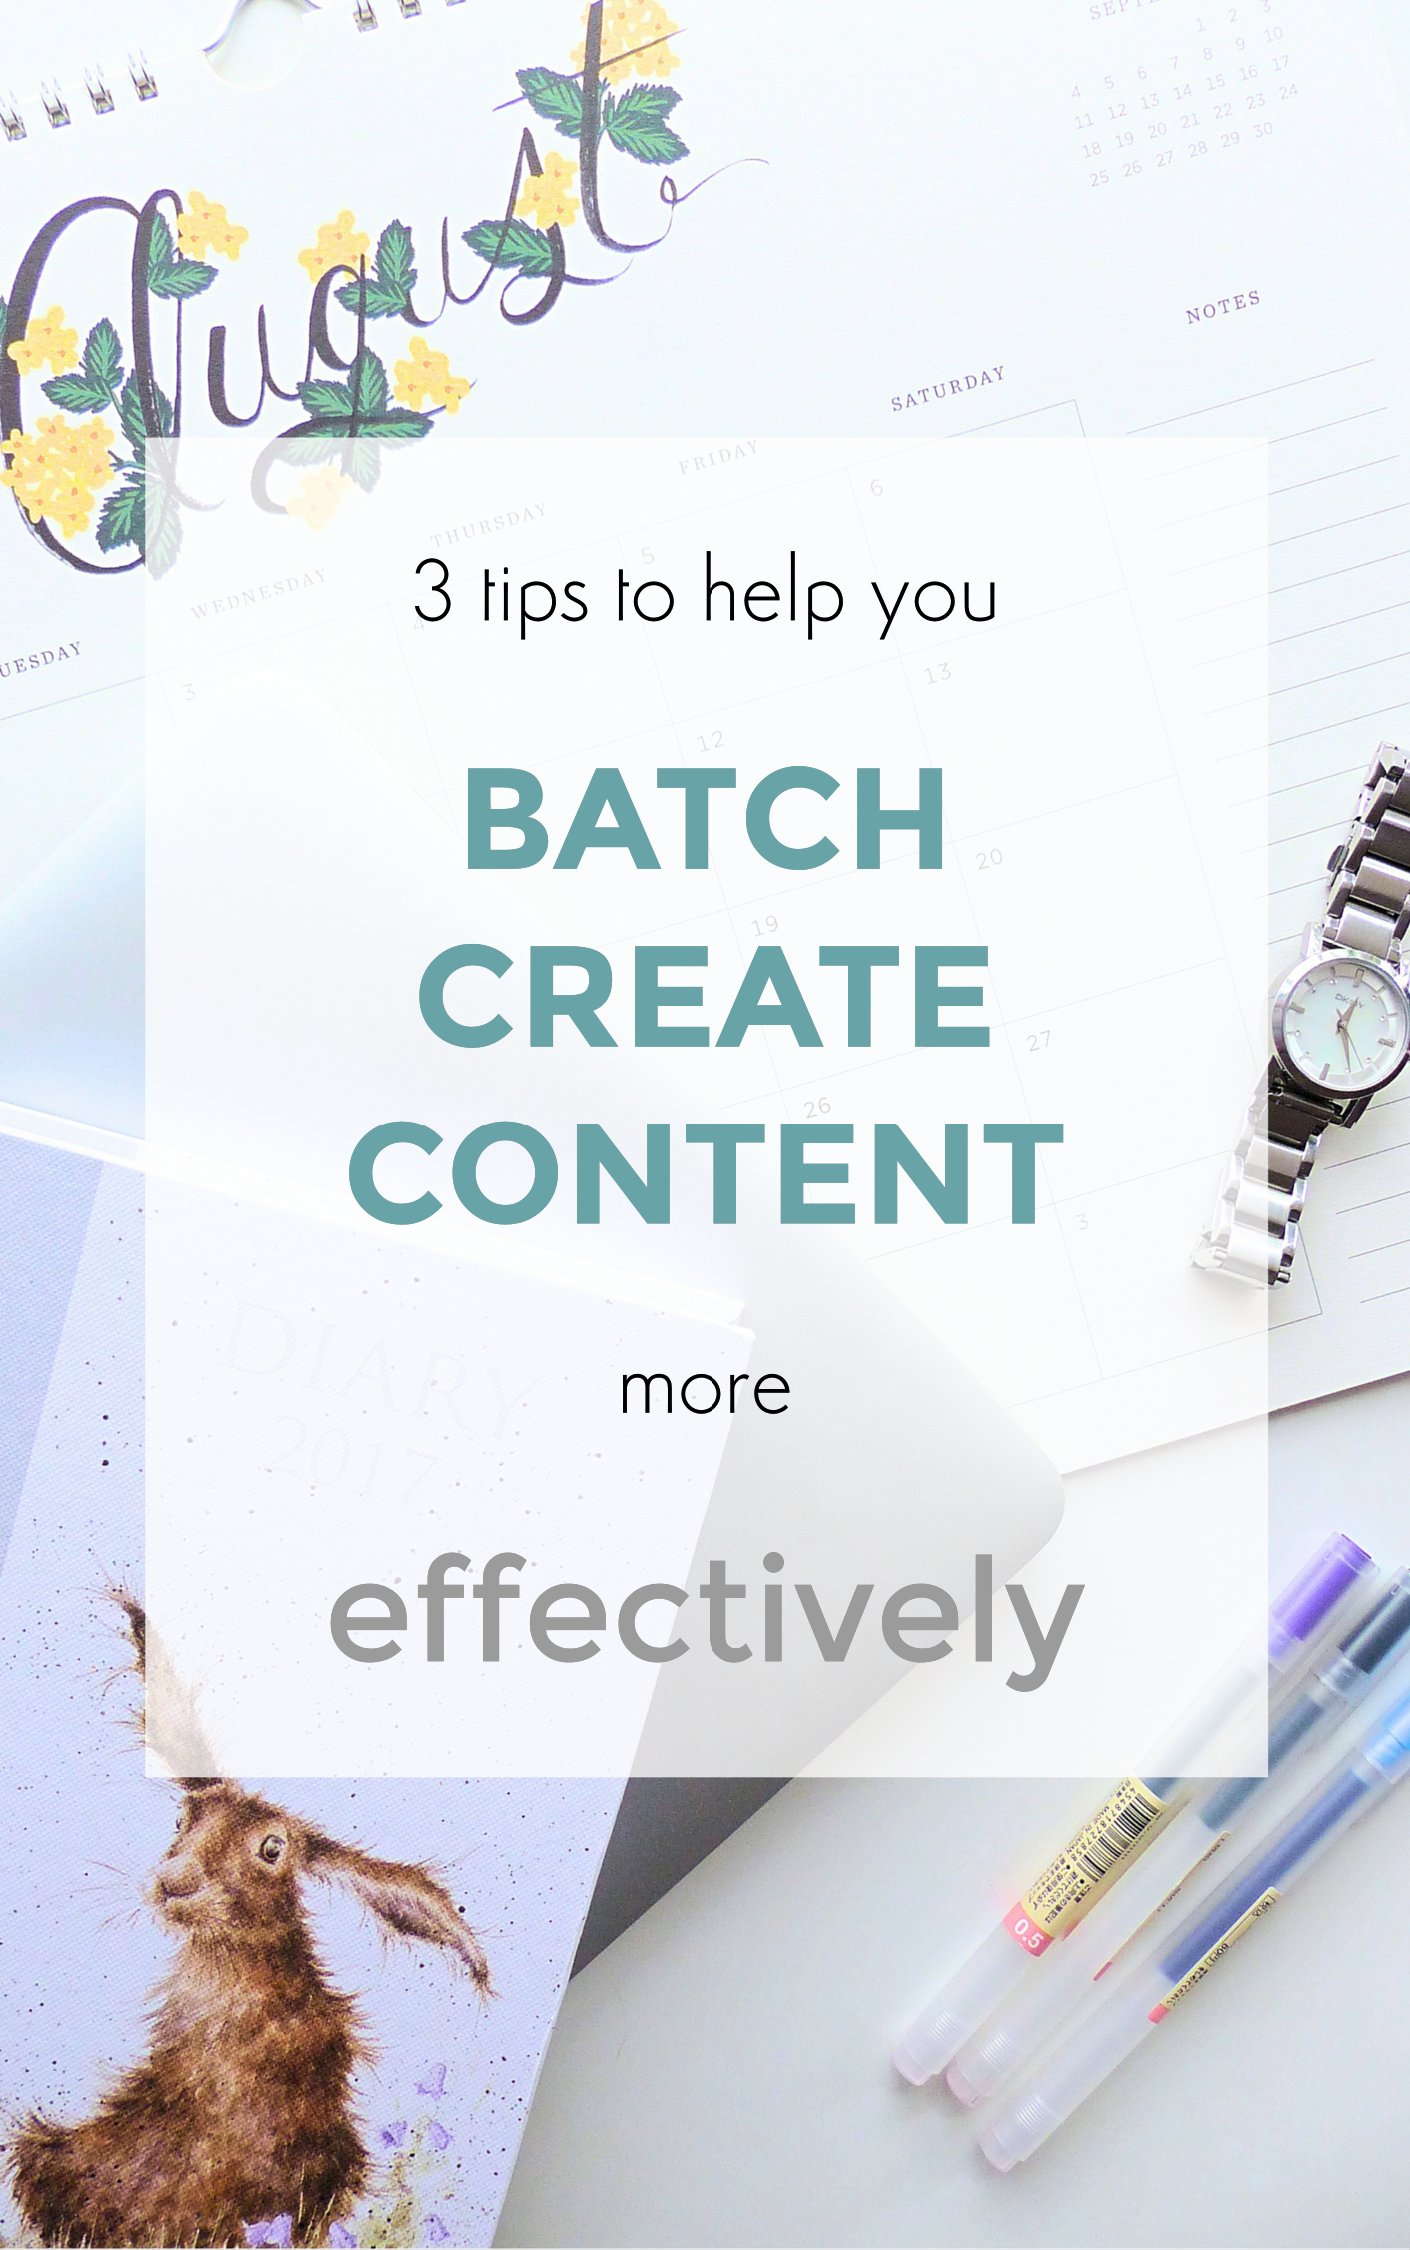 3 tips to help you batch create content more effectively